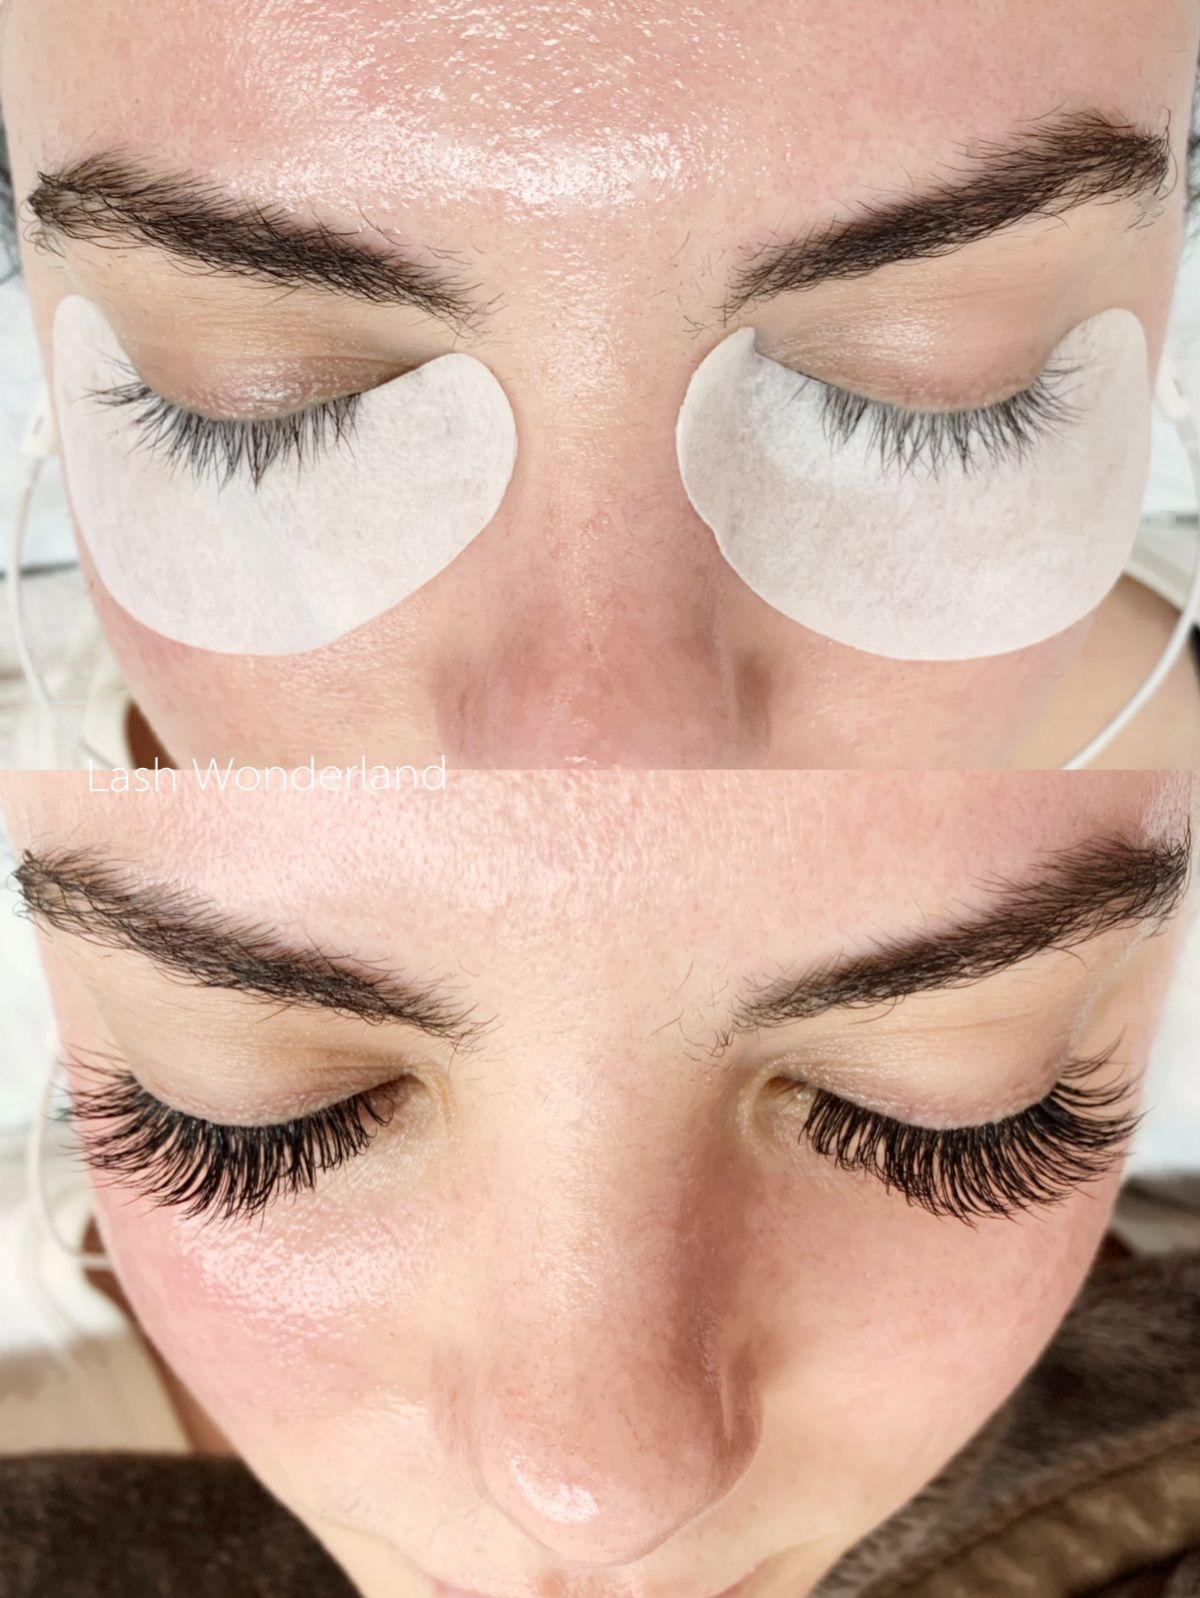 1ca92d866ef Double Set 180 lashes per eye. Find this Pin and more on Professional Eyelash  Extensions ...